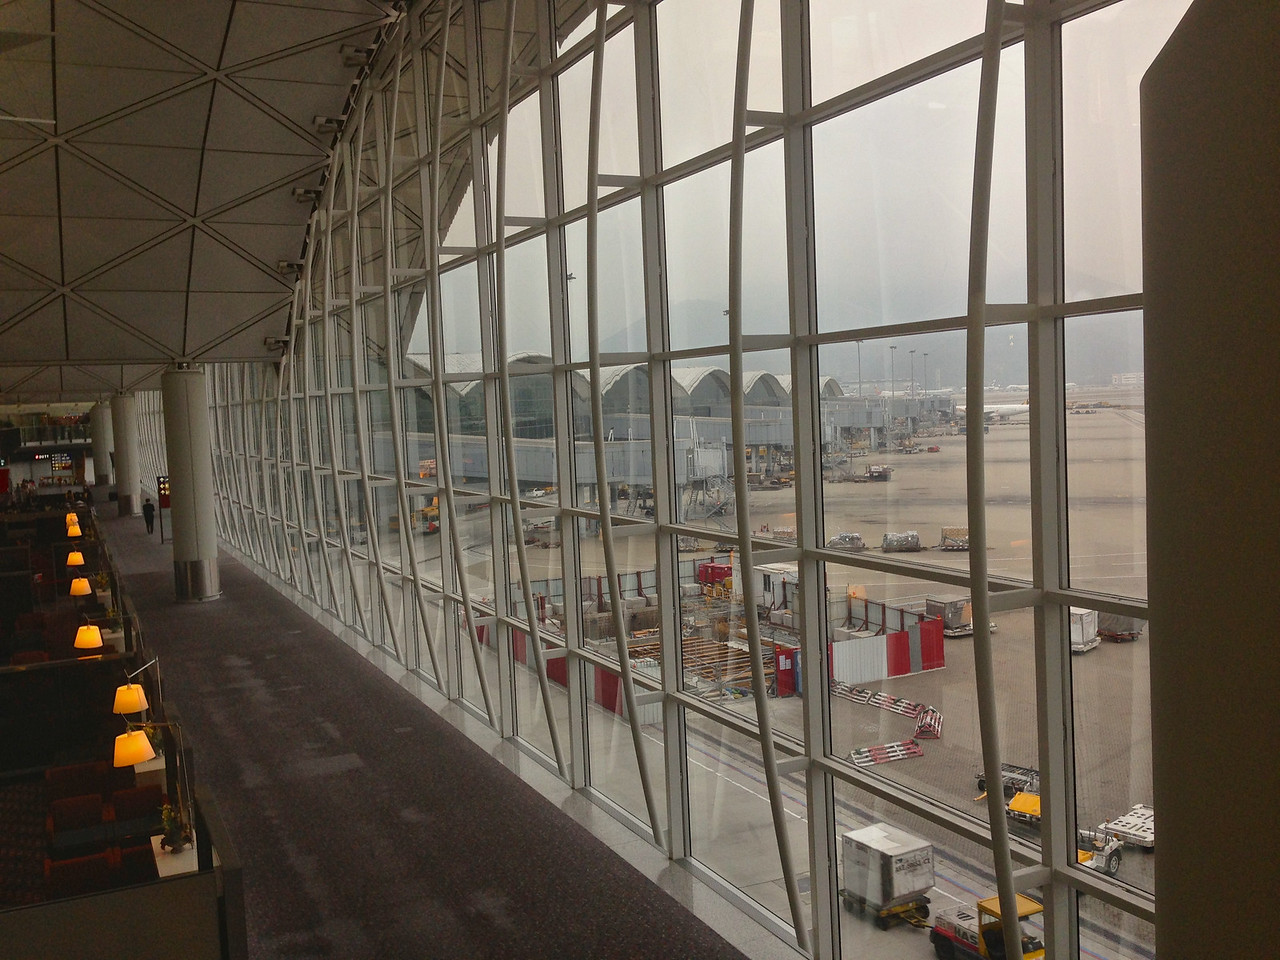 Hong Kong International Airport is also known as Chek Lap Kok Airport, being built on the island of Chek Lap Kok by land reclamation.<br /> <br /> HKIA also operates one of the world's largest passenger terminal buildings (the largest when opened in 1998) and operates 24 hours a day. It is the primary hub for Cathay Pacific, Dragonair, Hong Kong Airlines, Hong Kong Express Airways and Air Hong Kong (cargo). <br /> <br /> HKIA is an important contributor to the Hong Kong economy, employing approximately 60,000 people. About 90 airlines operate flights from the airport to over 150 cities across the globe. <br /> <br /> In 2011 HKIA handled 53,314,213 passengers, making it the 10th busiest airport worldwide by passenger traffic. It also surpassed Memphis International Airport to become the world's busiest airport by cargo traffic.